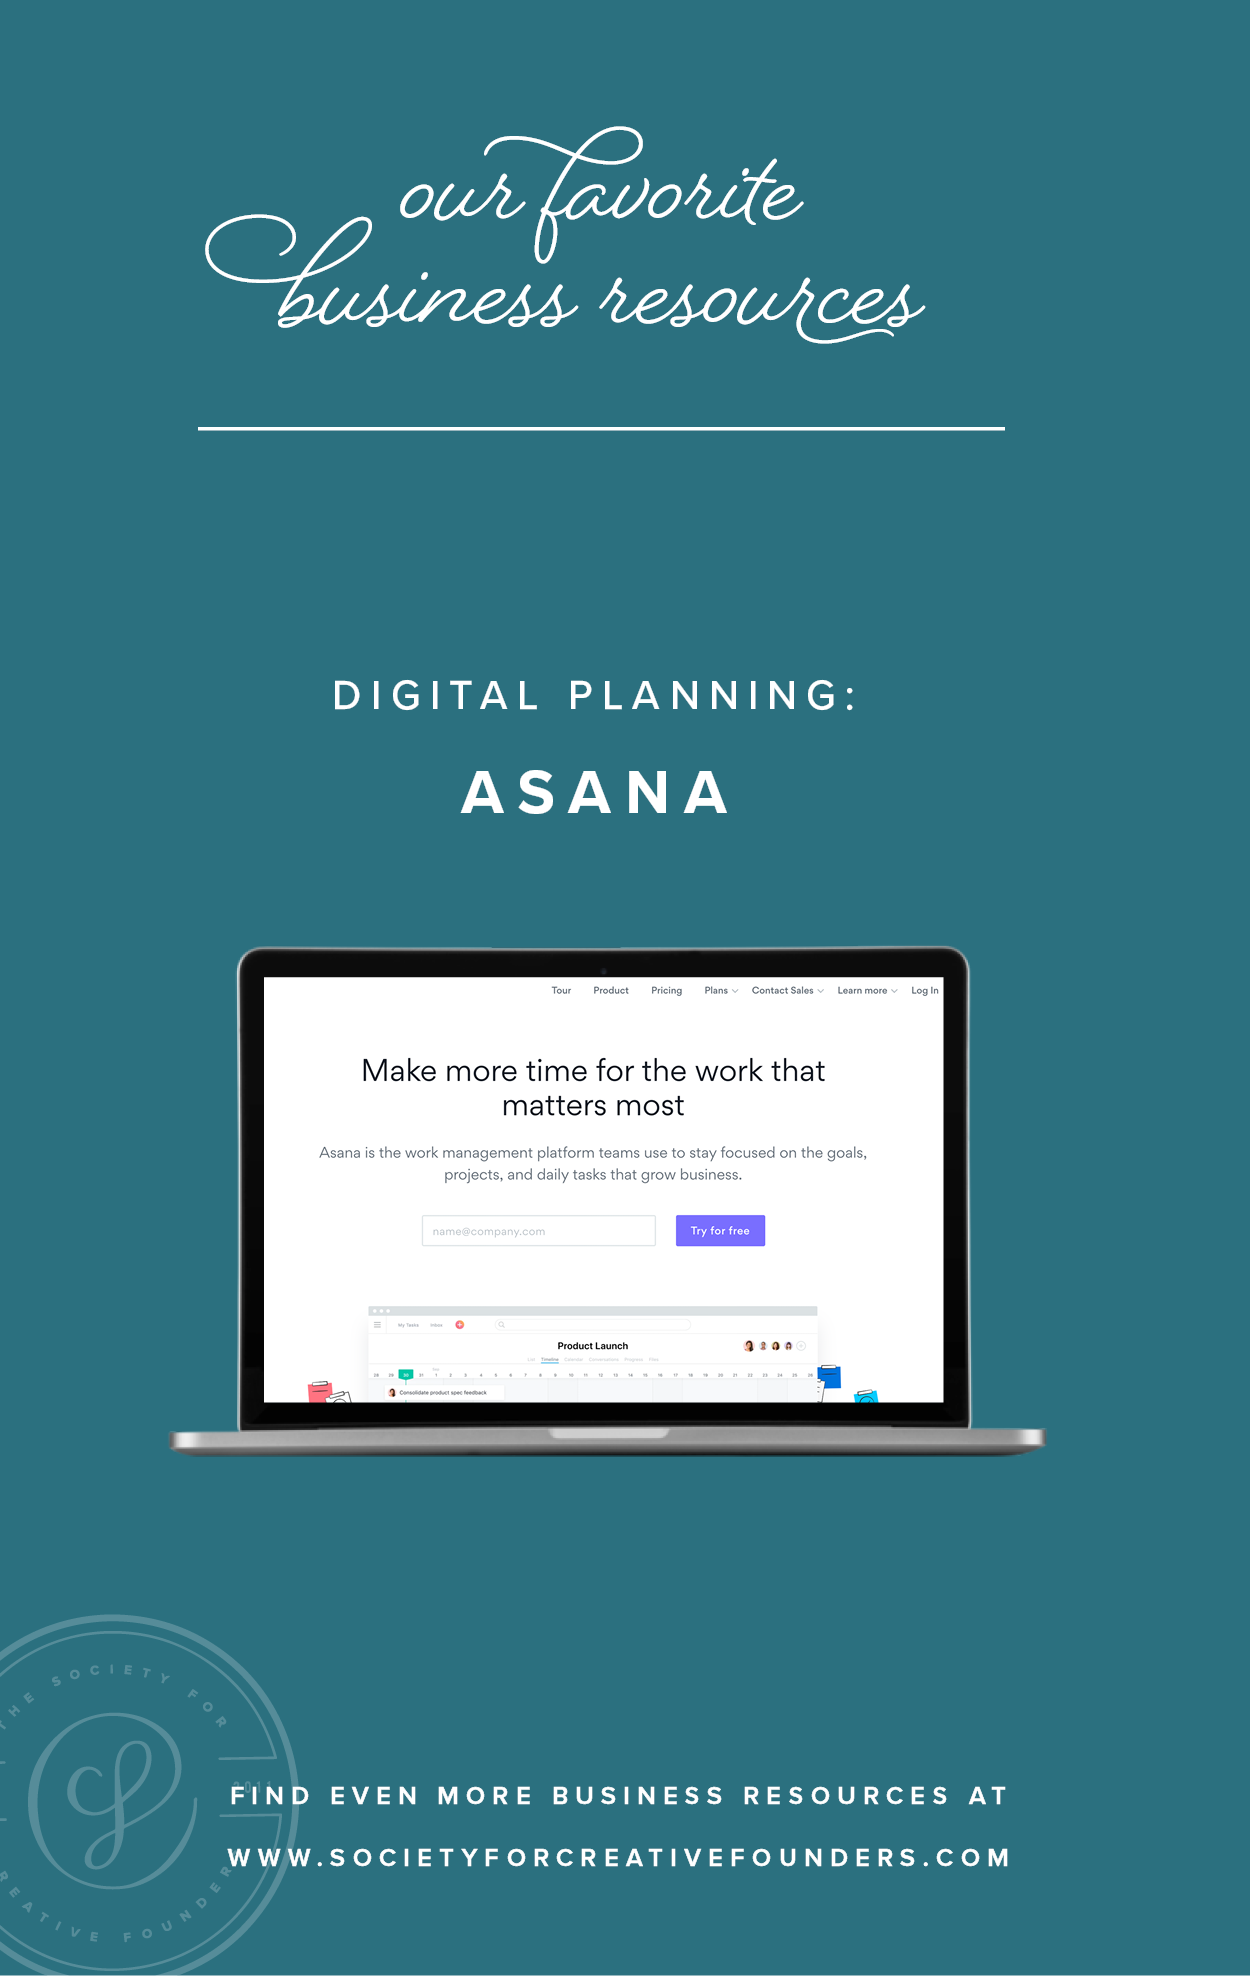 Asana and Digital Planning - Favorite Business Resources from Society for Creative Founders